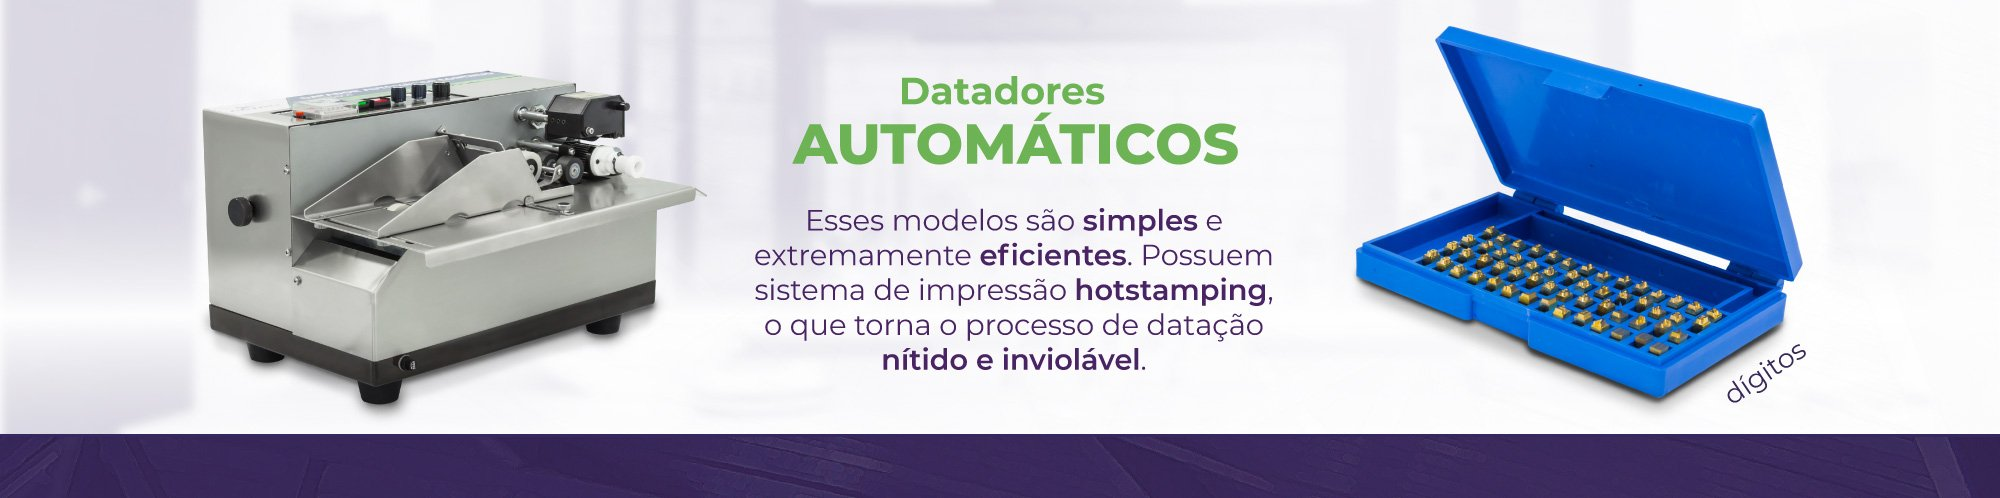 Categorias - Datadores Automáticos